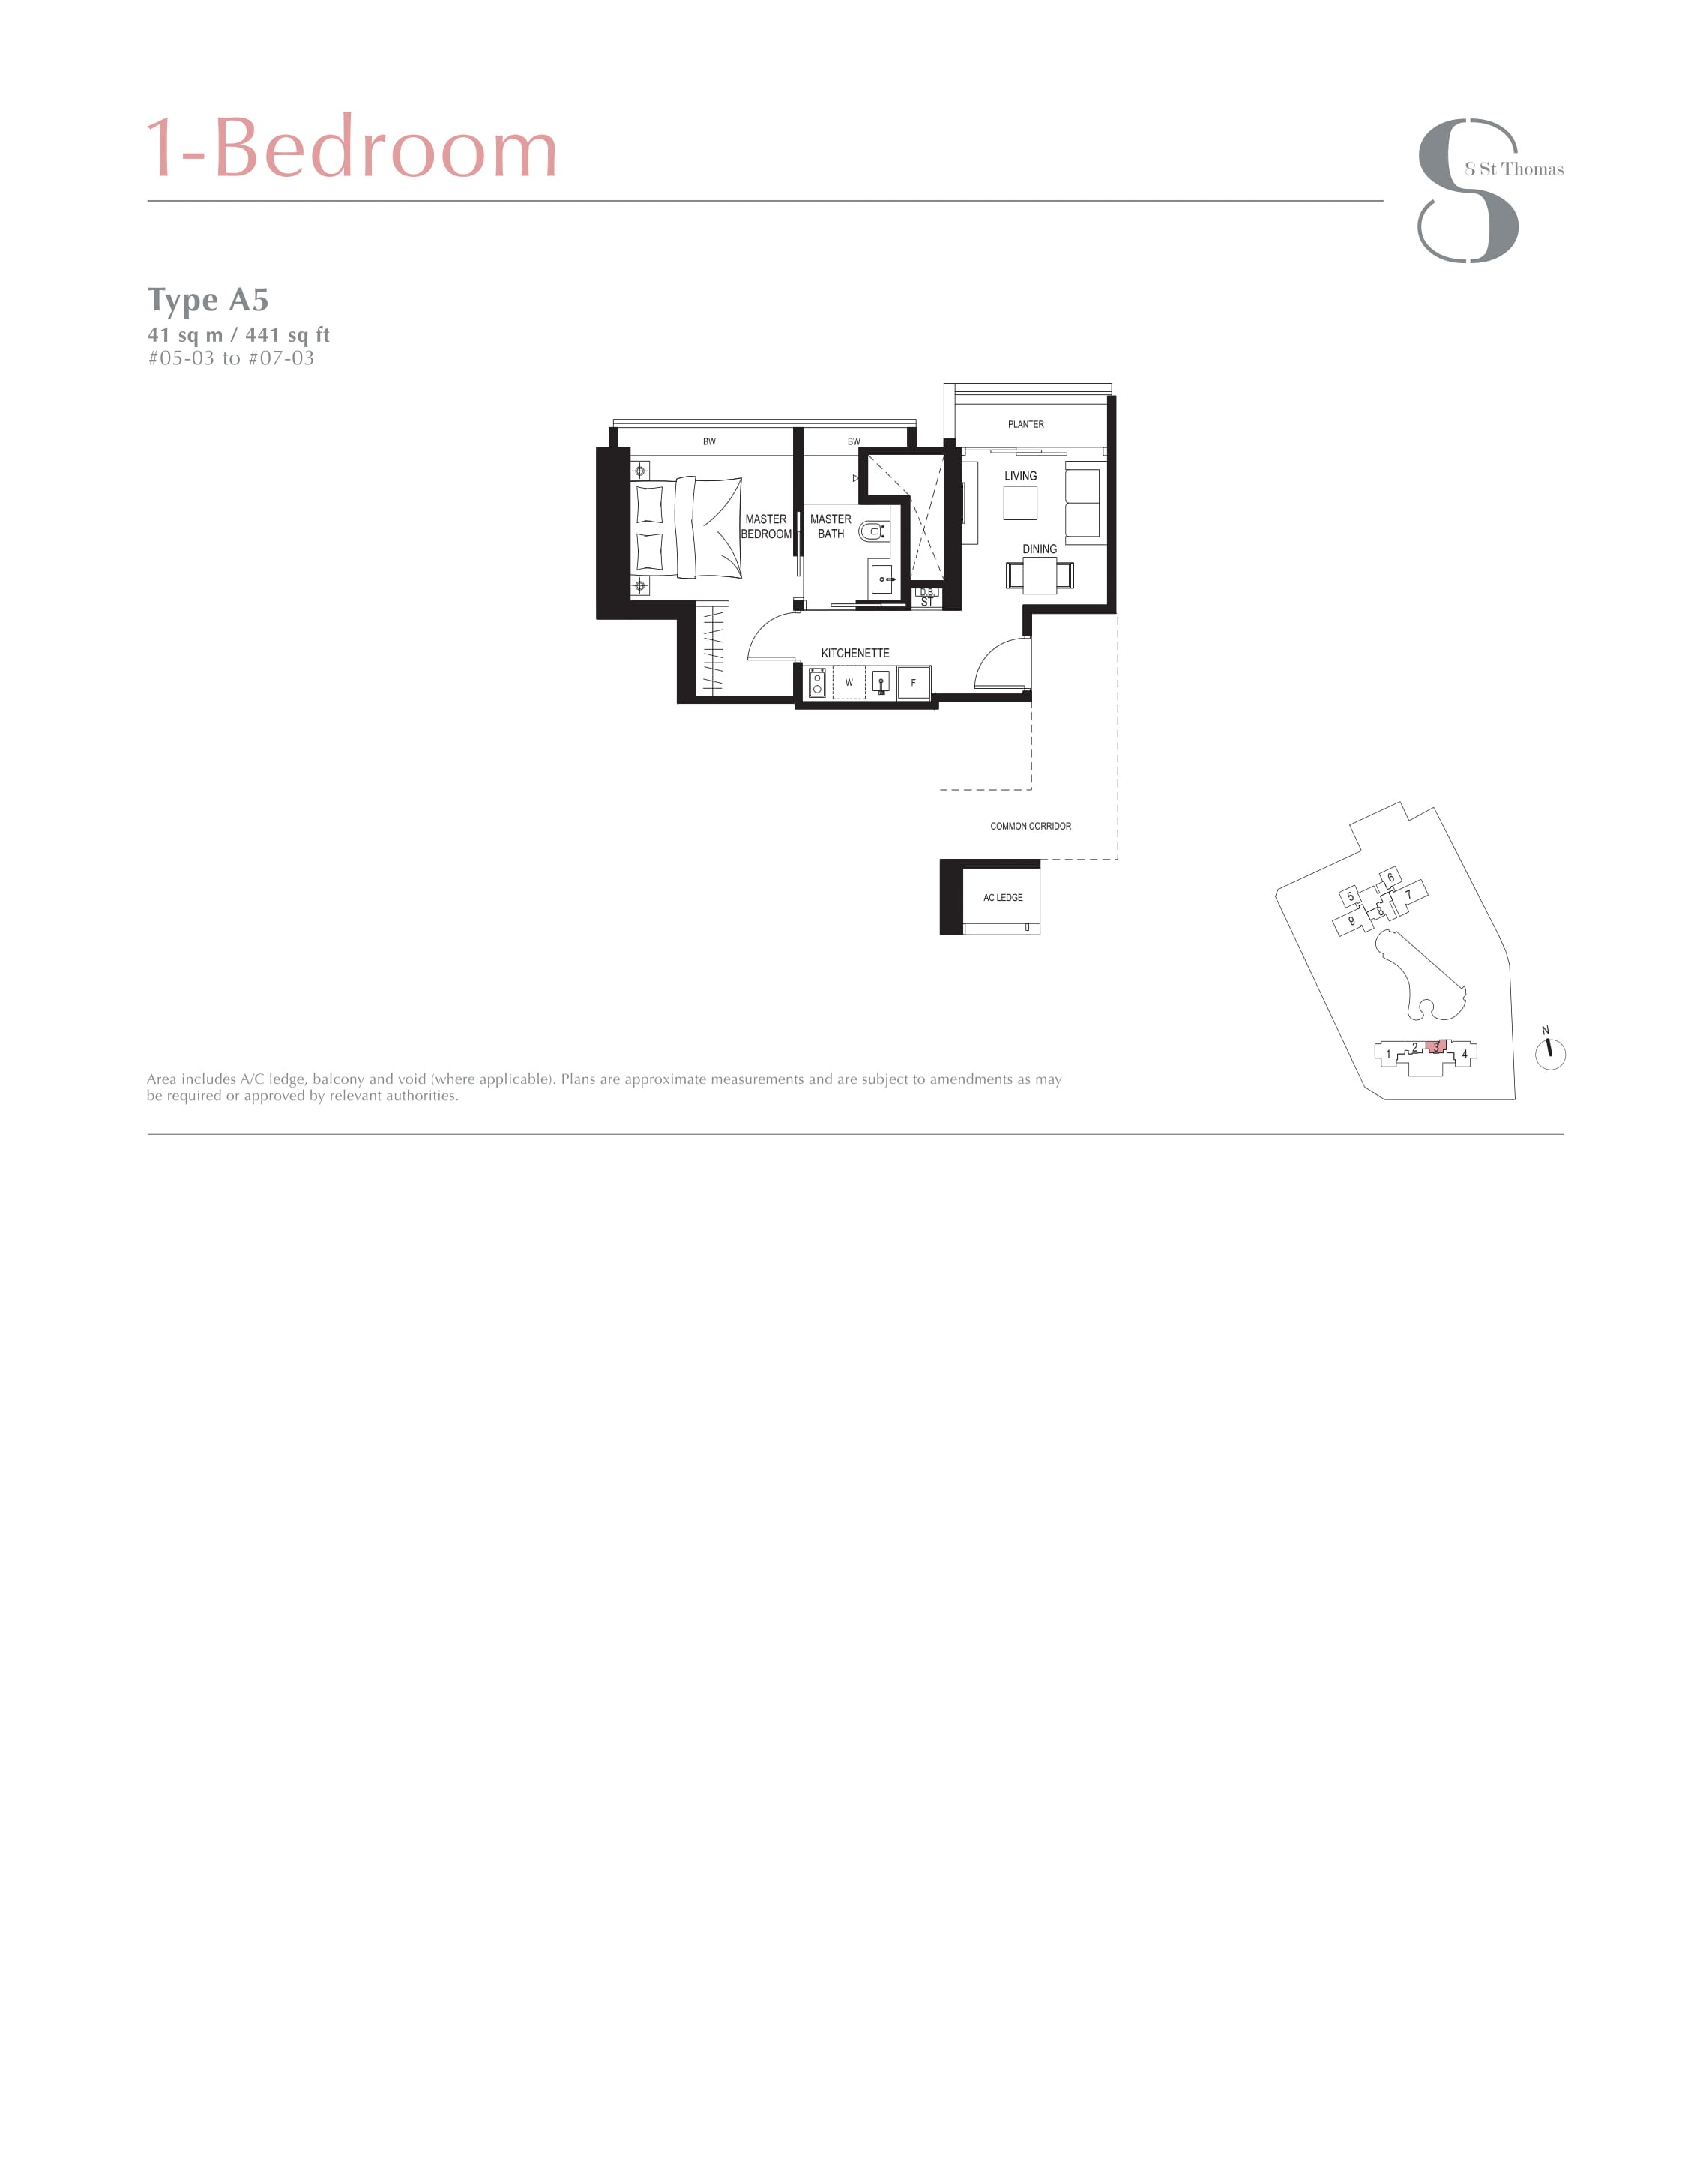 8 St Thomas 1 Bedroom Floor Plans Type A5